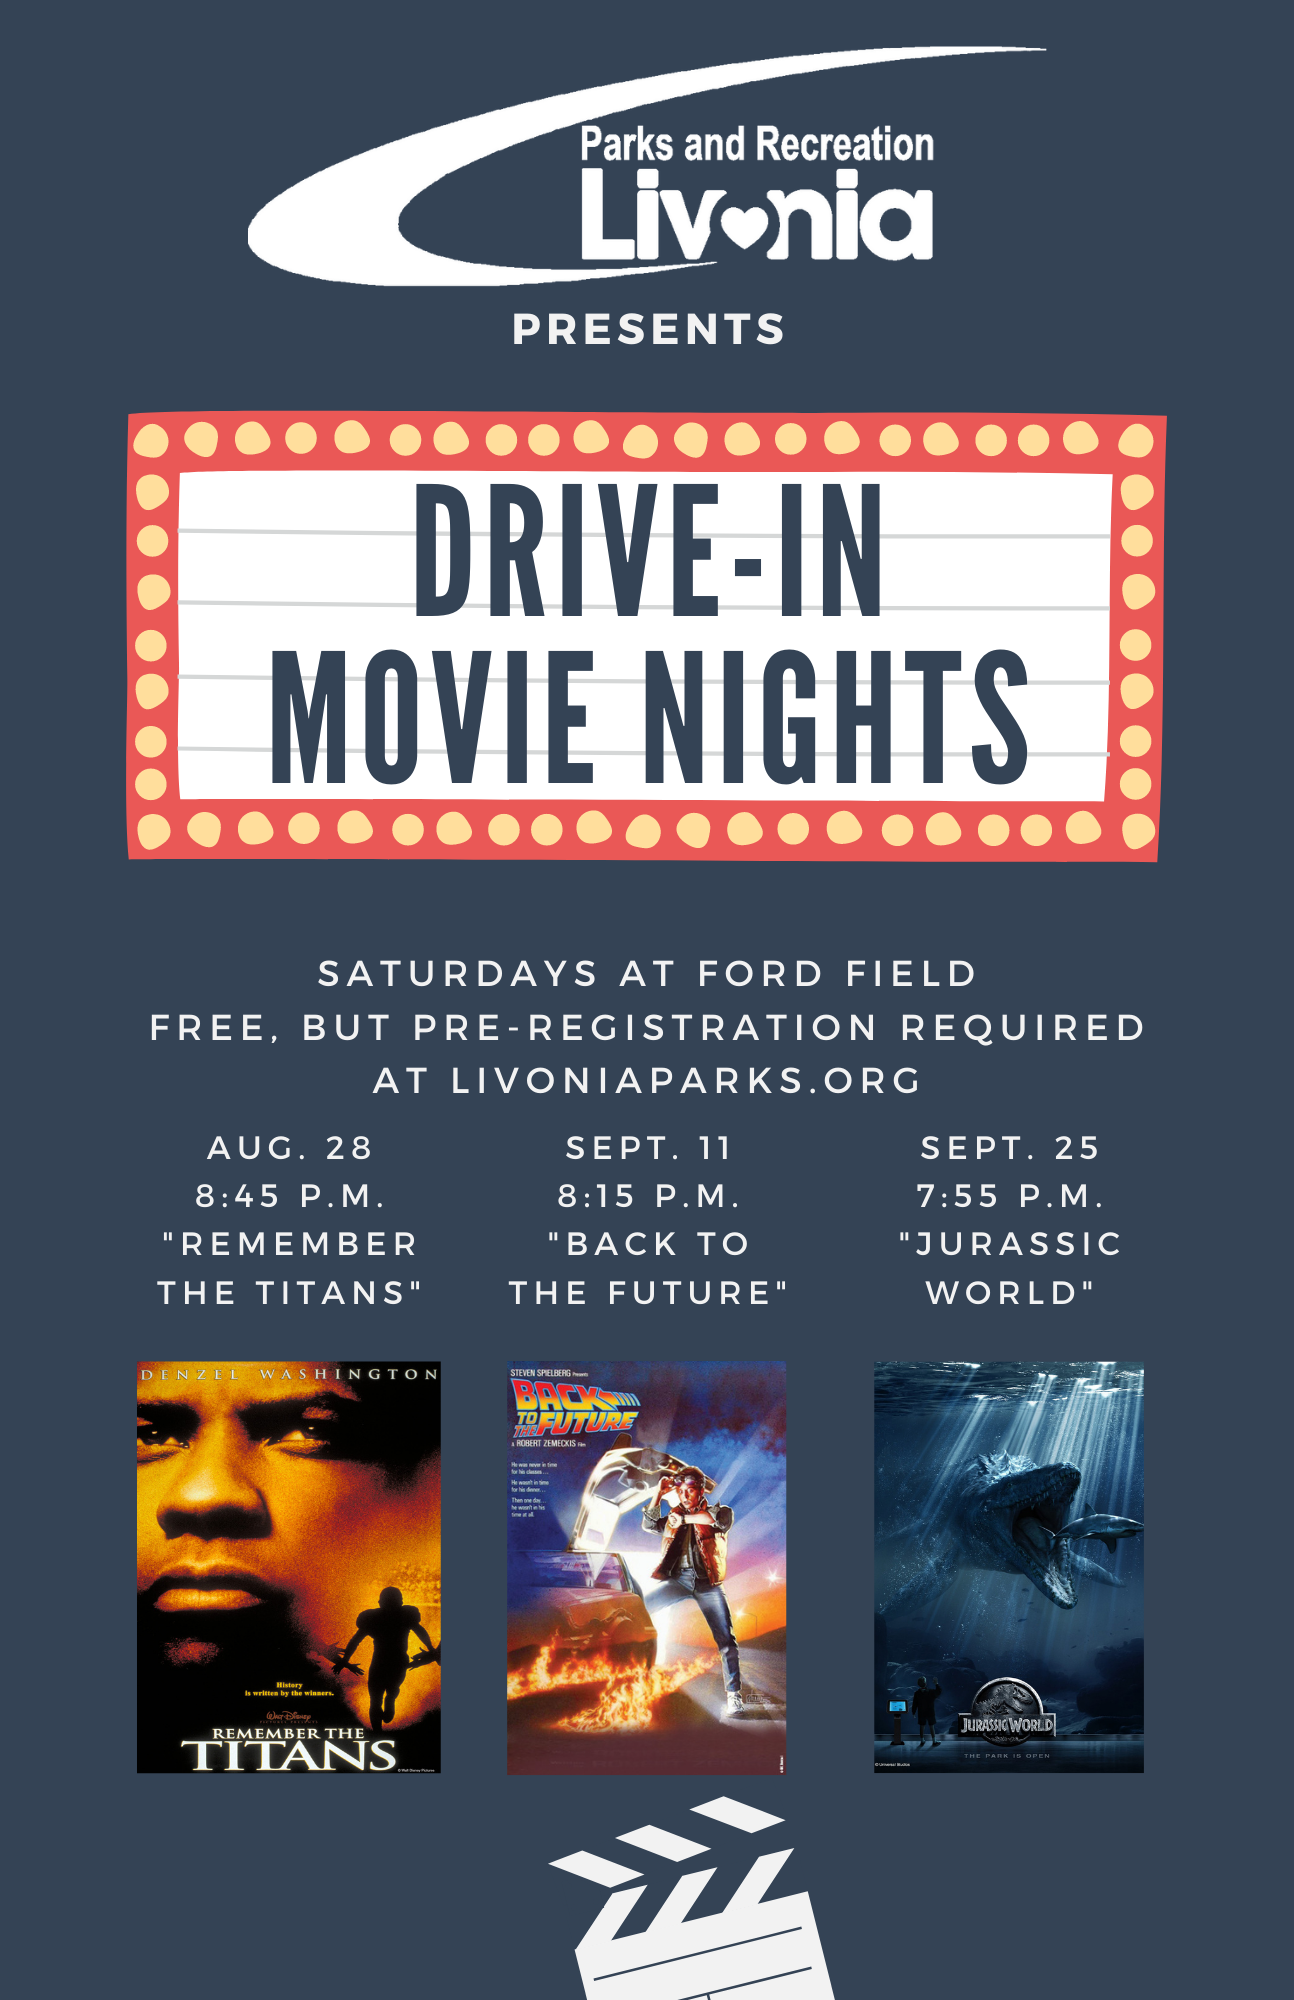 2021-8-28 Drive-In Movies Opens in new window